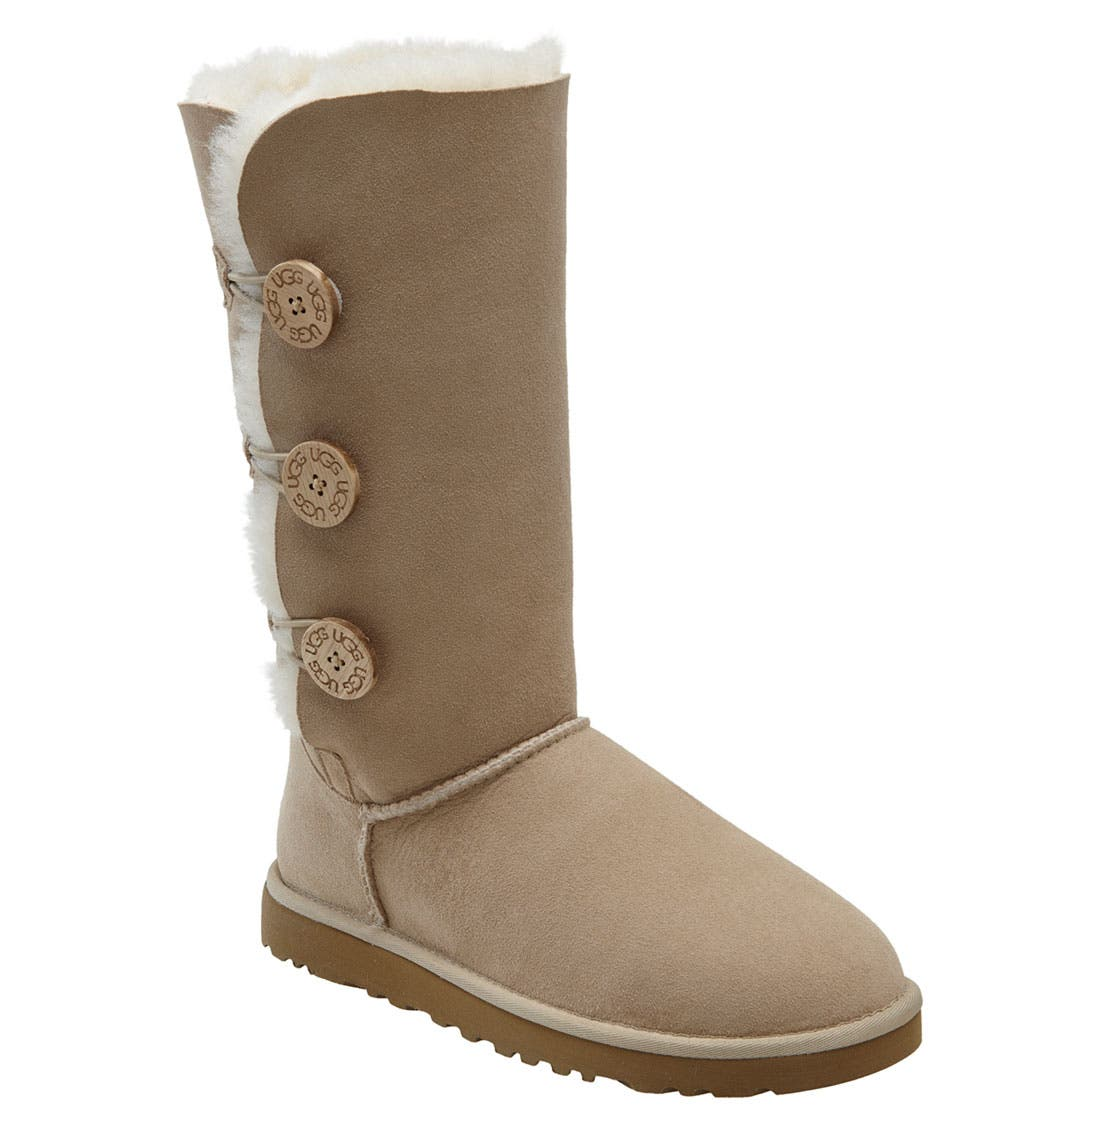 Alternate Image 1 Selected - UGG® 'Bailey Button Triplet' Boot (Women)